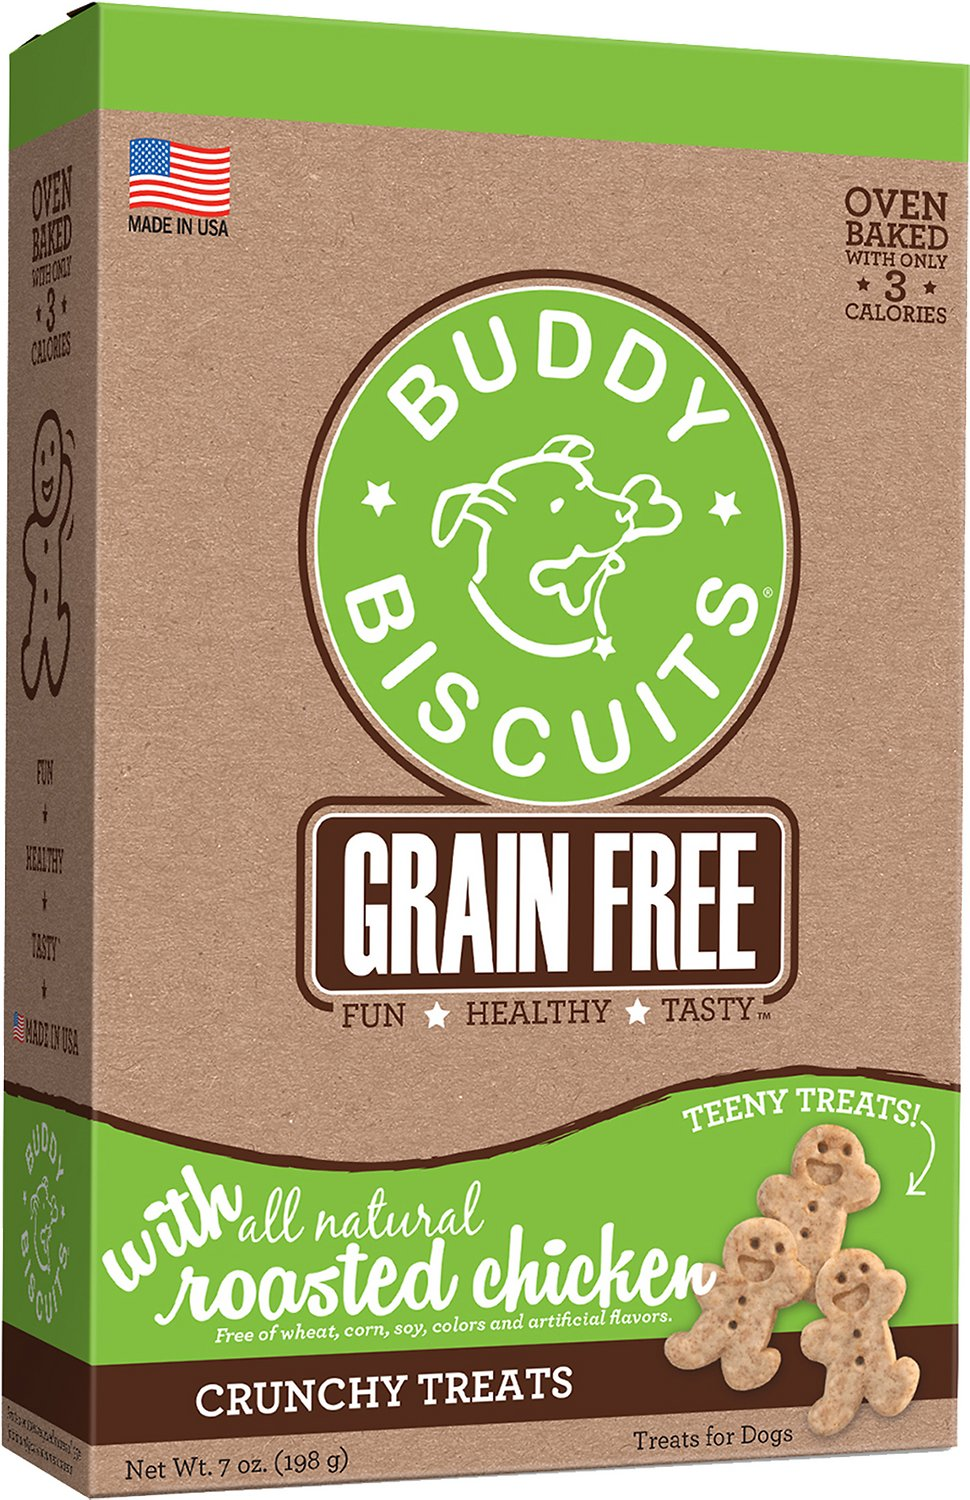 Made in USA Only Training or Snack Size Soft /& Chewy Treats for Small /& Large Dogs Buddy Biscuits